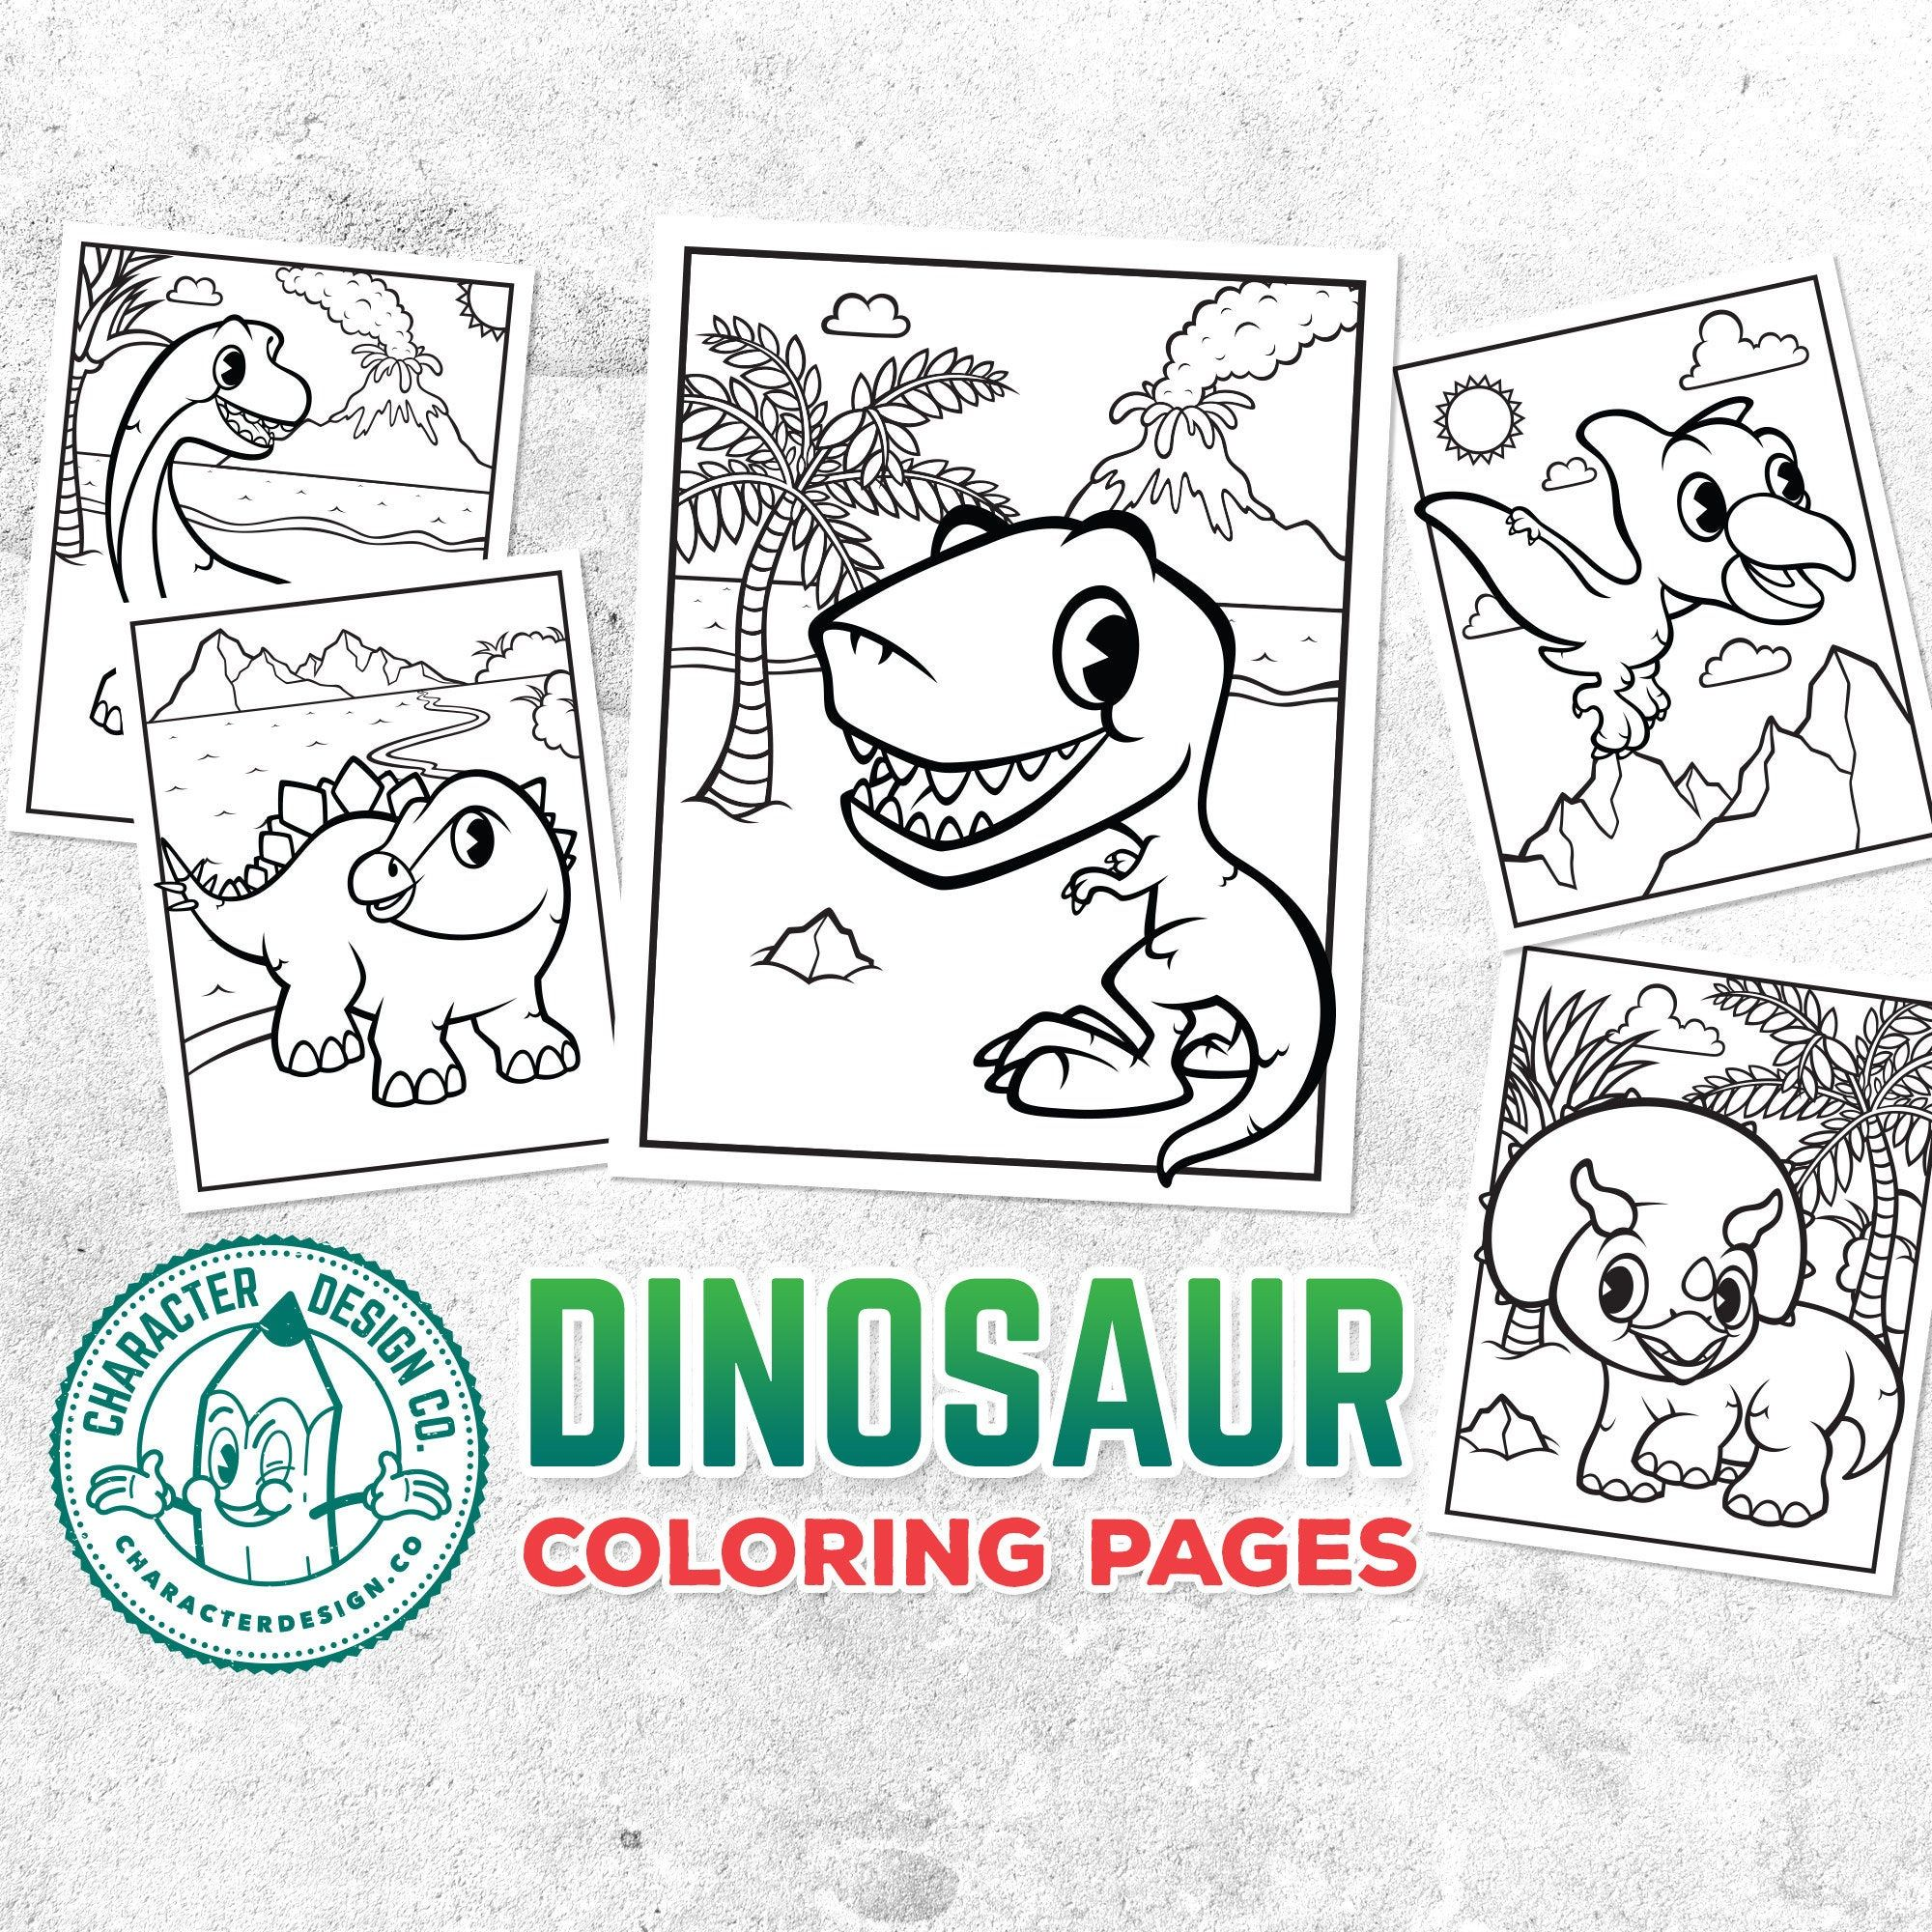 Dinosaur Coloring Pages 5X Printable Dinosaur Colouring